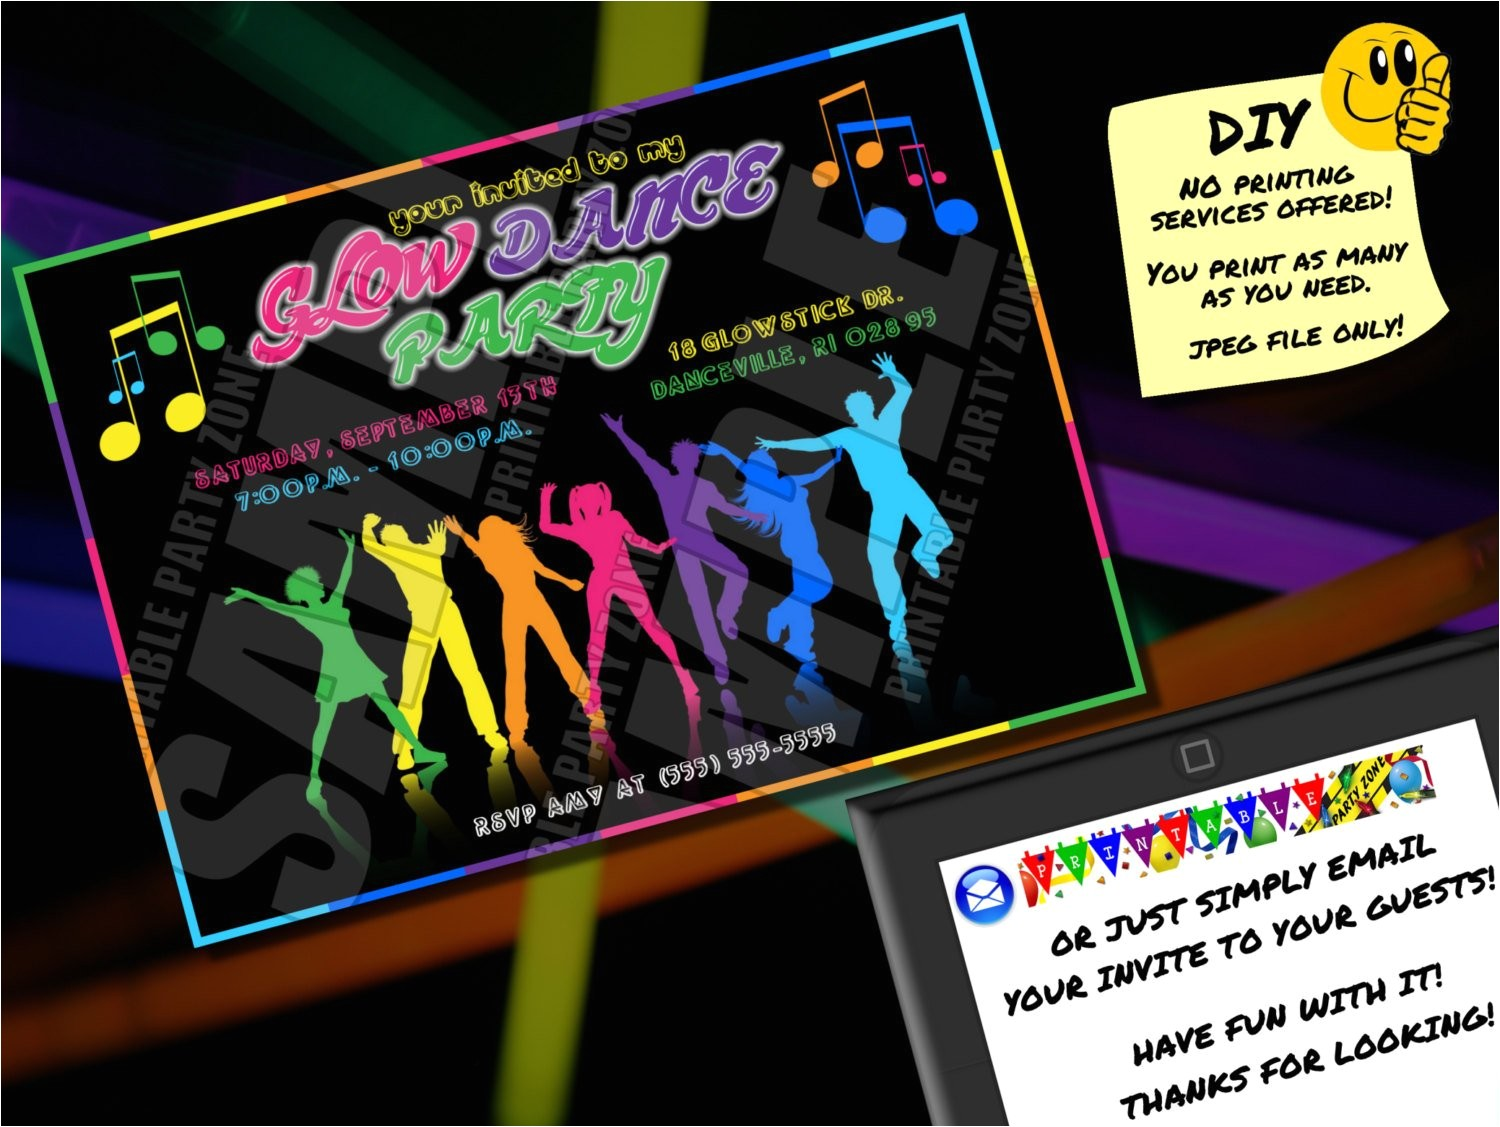 glow stick party invitations